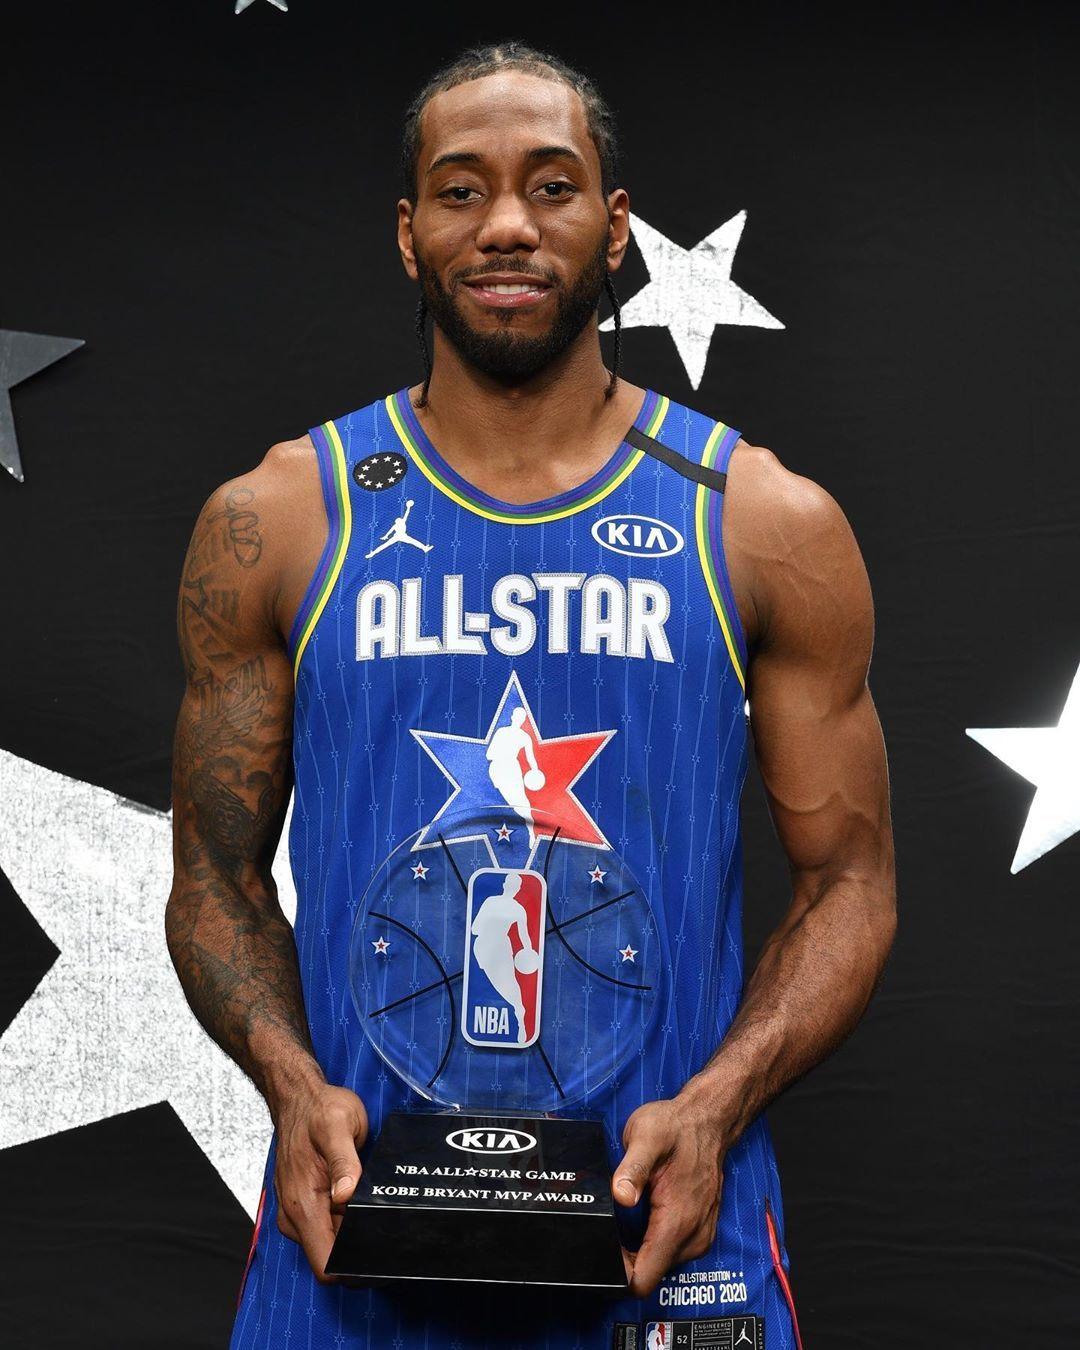 Nba On Instagram The First Kia Nba All Star Game Kobe Bryant Mvp Kawhi Leonard Of The Laclippers Kiaallstarmvp In 2020 Basketball Players Nba All Star Nba